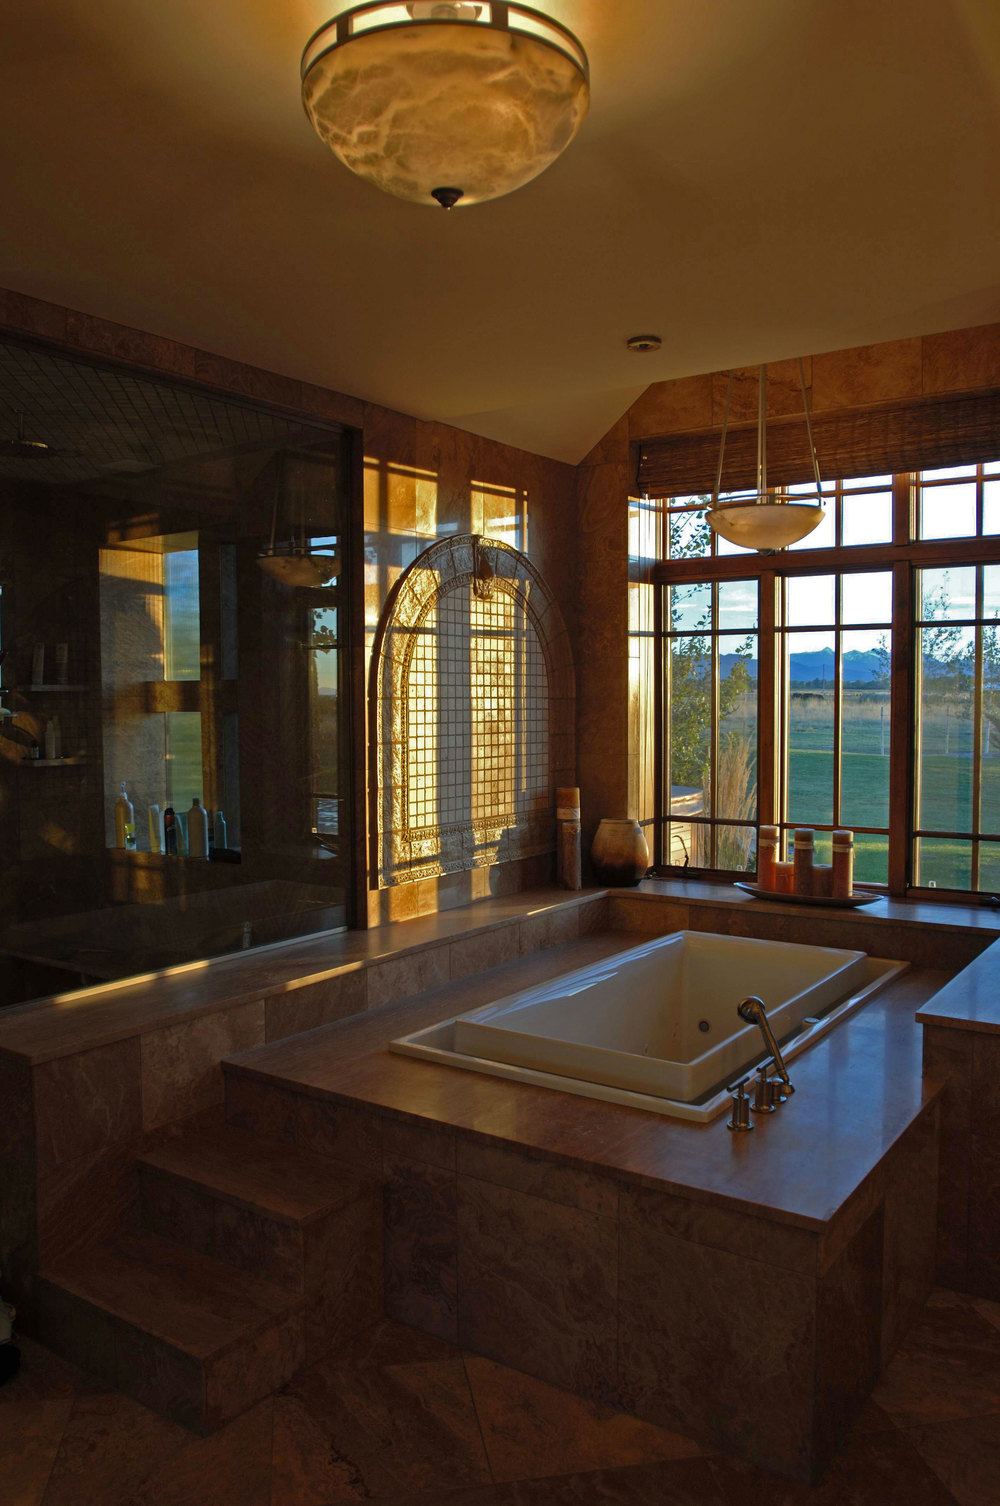 Ward-House-Int-Bath-W.jpg